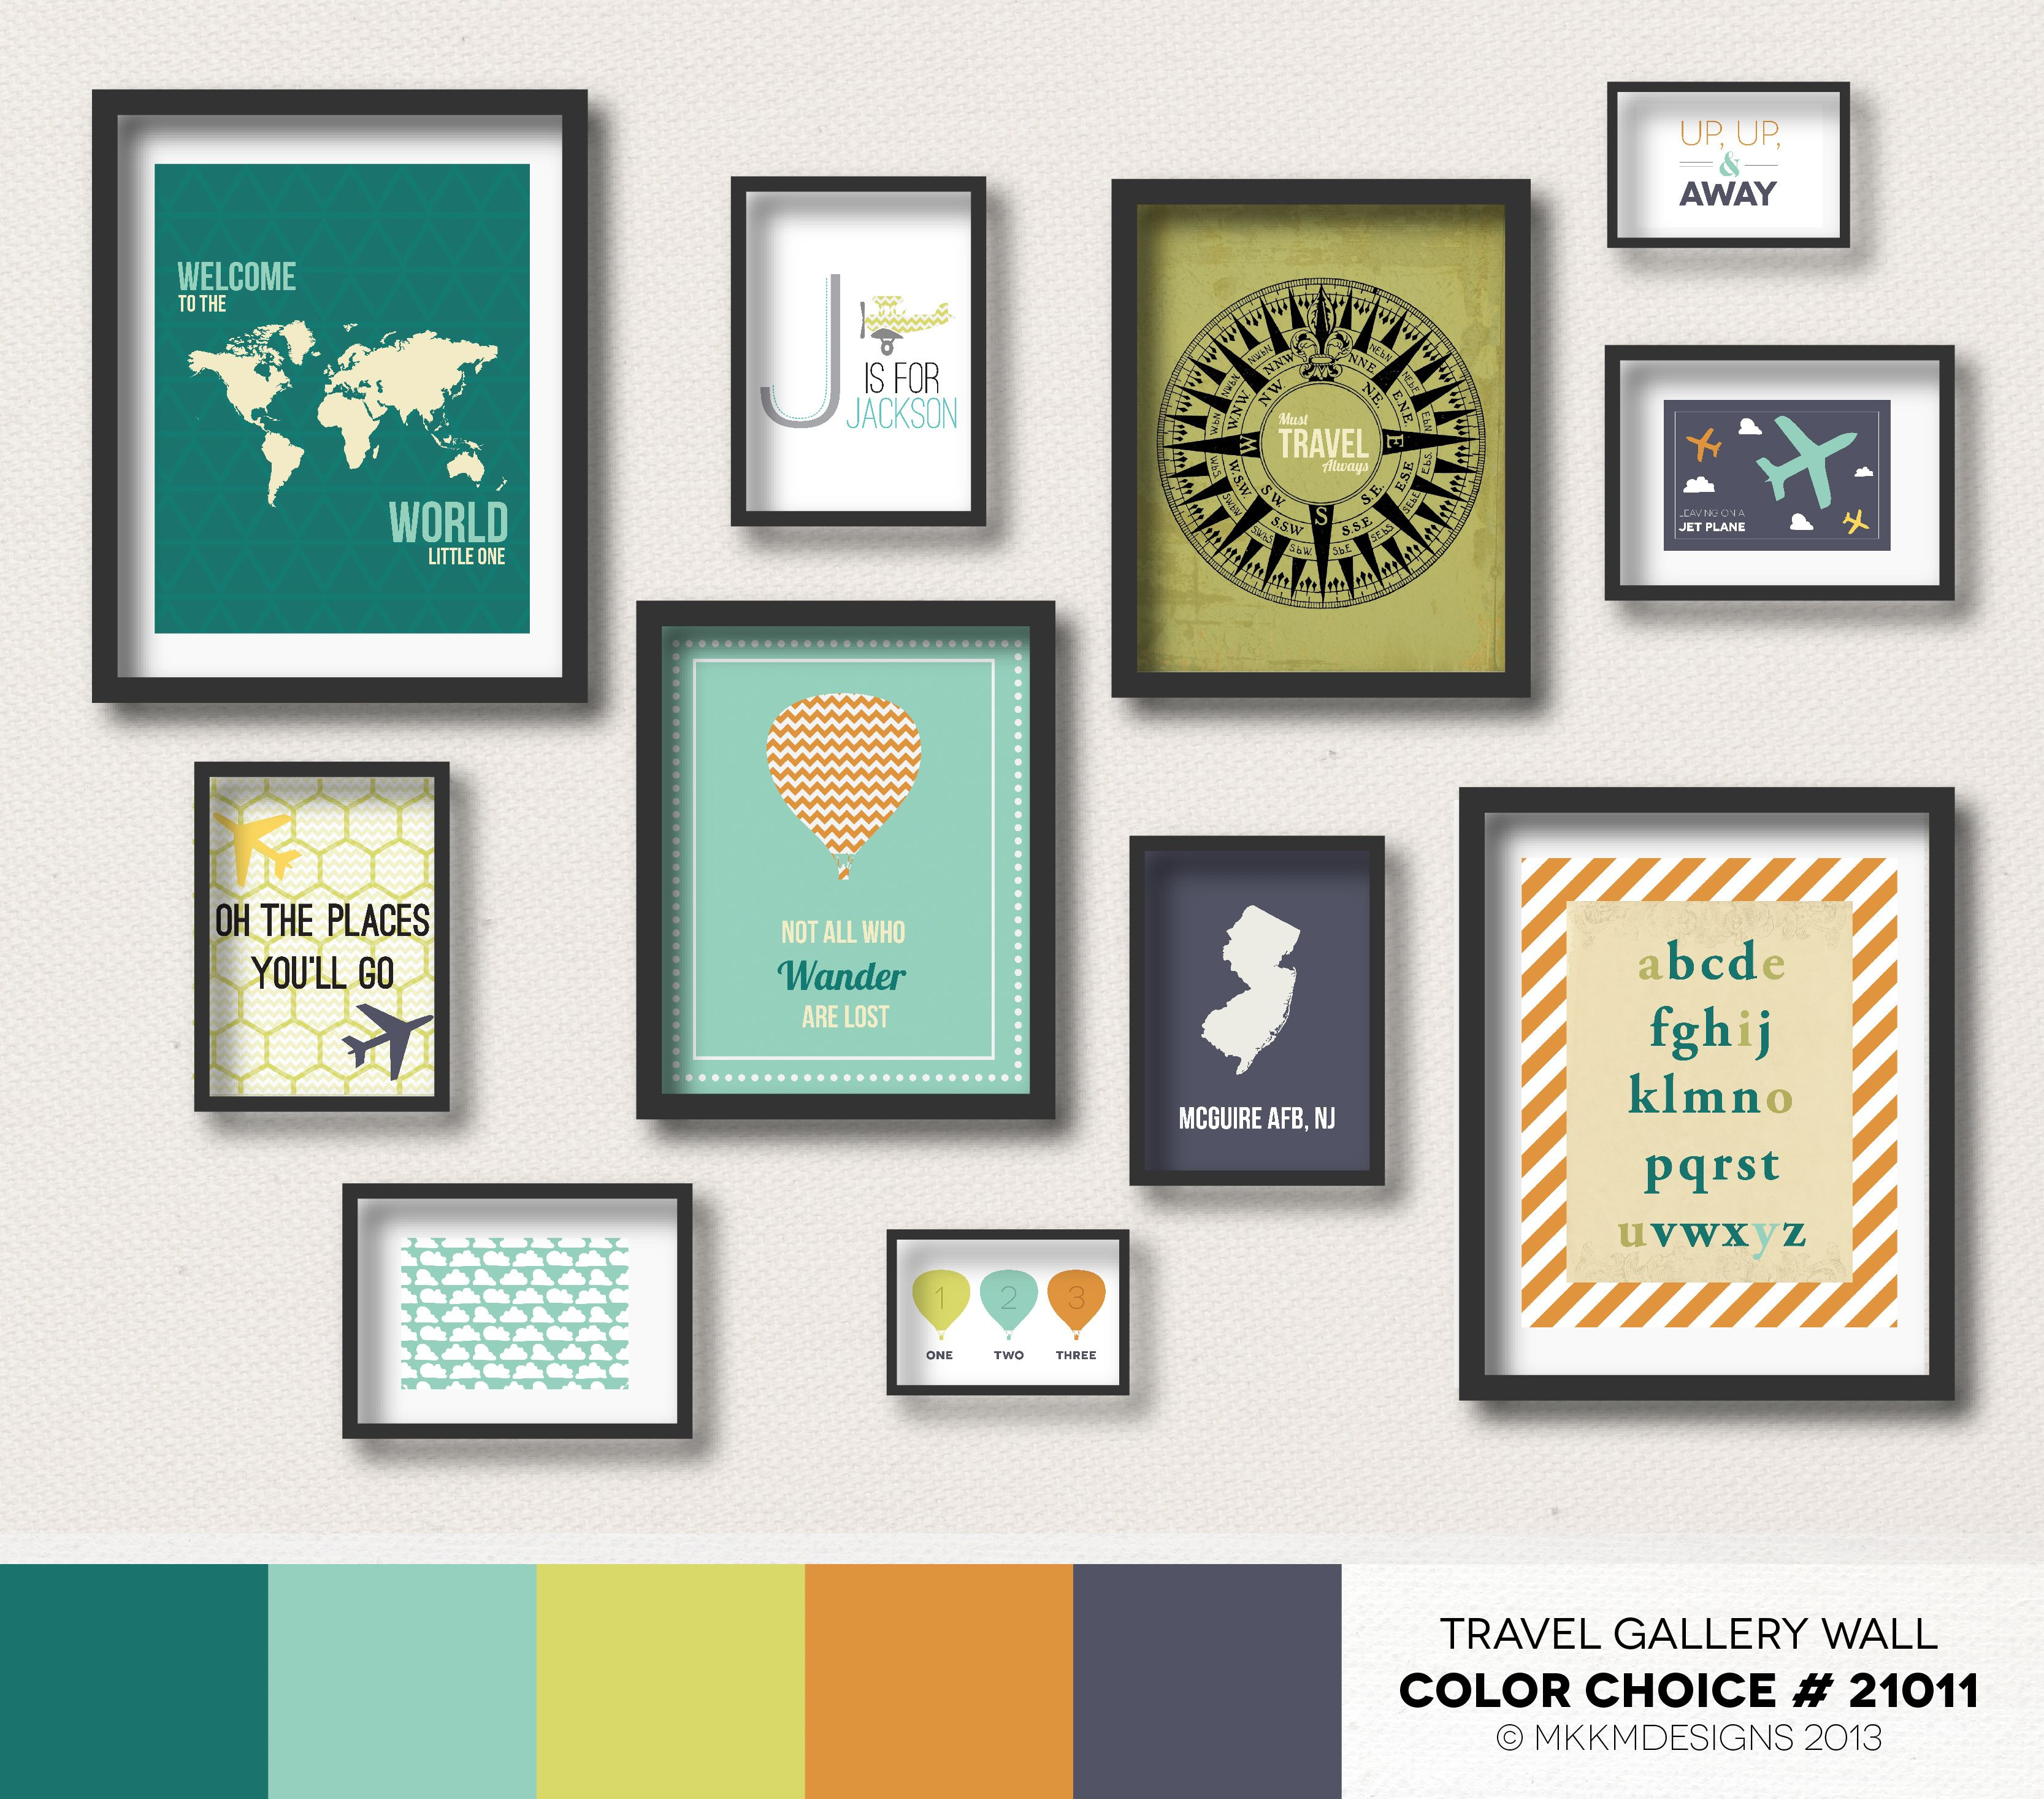 Travel Nursery Gallery Wall  Color Choice #21011 - Teals,